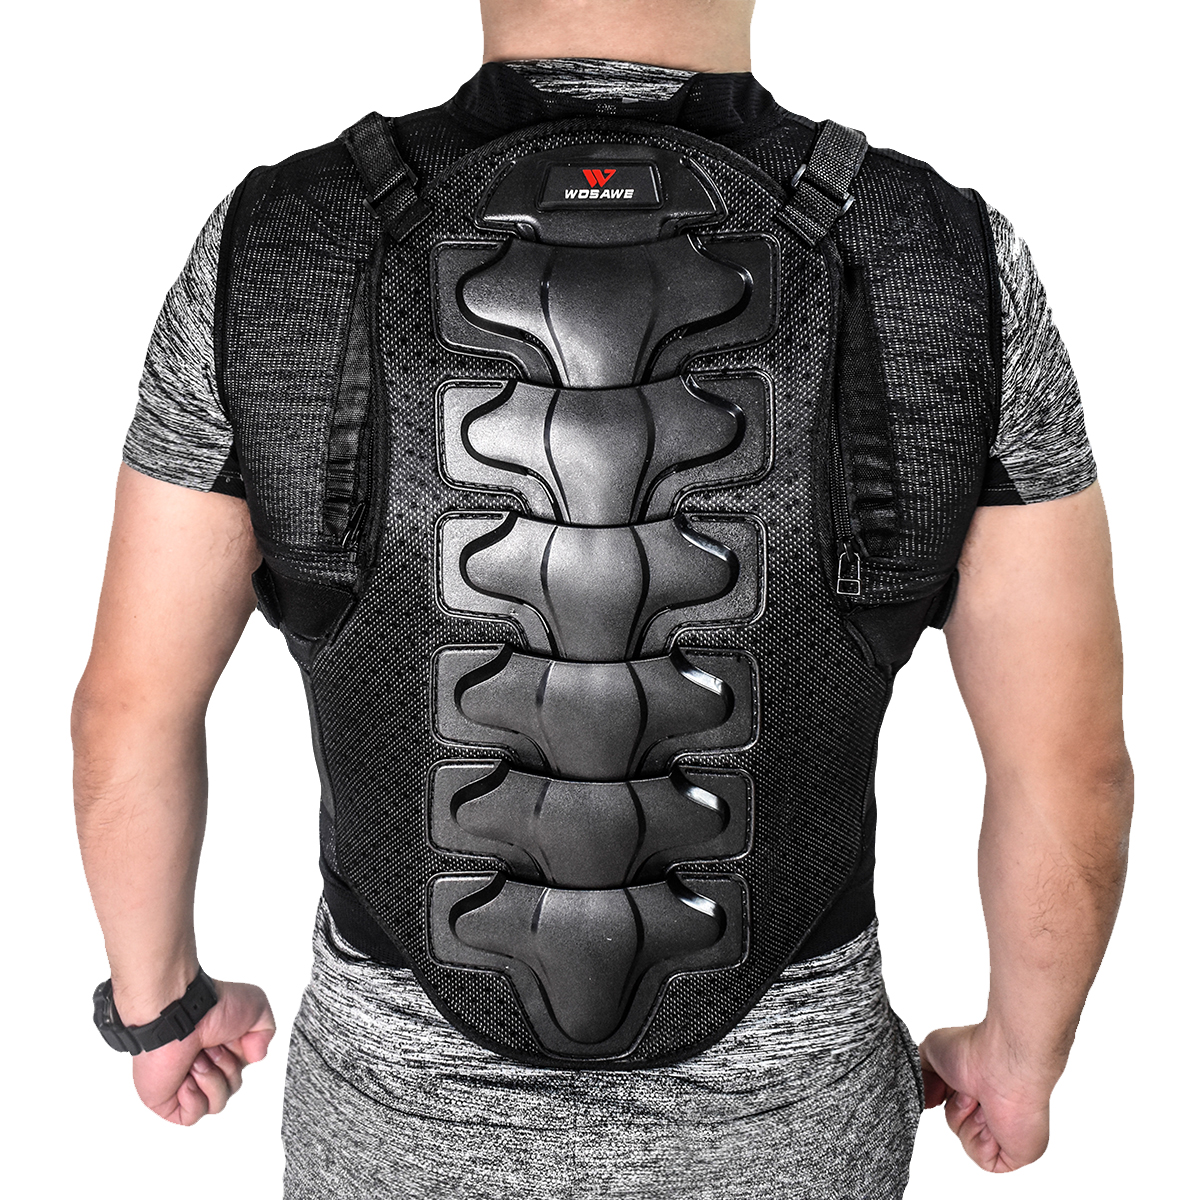 US $35 99 49% OFF|WOSAWE Motorcycle Armor Vest Motocross Cycling Equipment  Cool Mesh Body Protective Off Road Racing Chest Protector Skating Ski-in